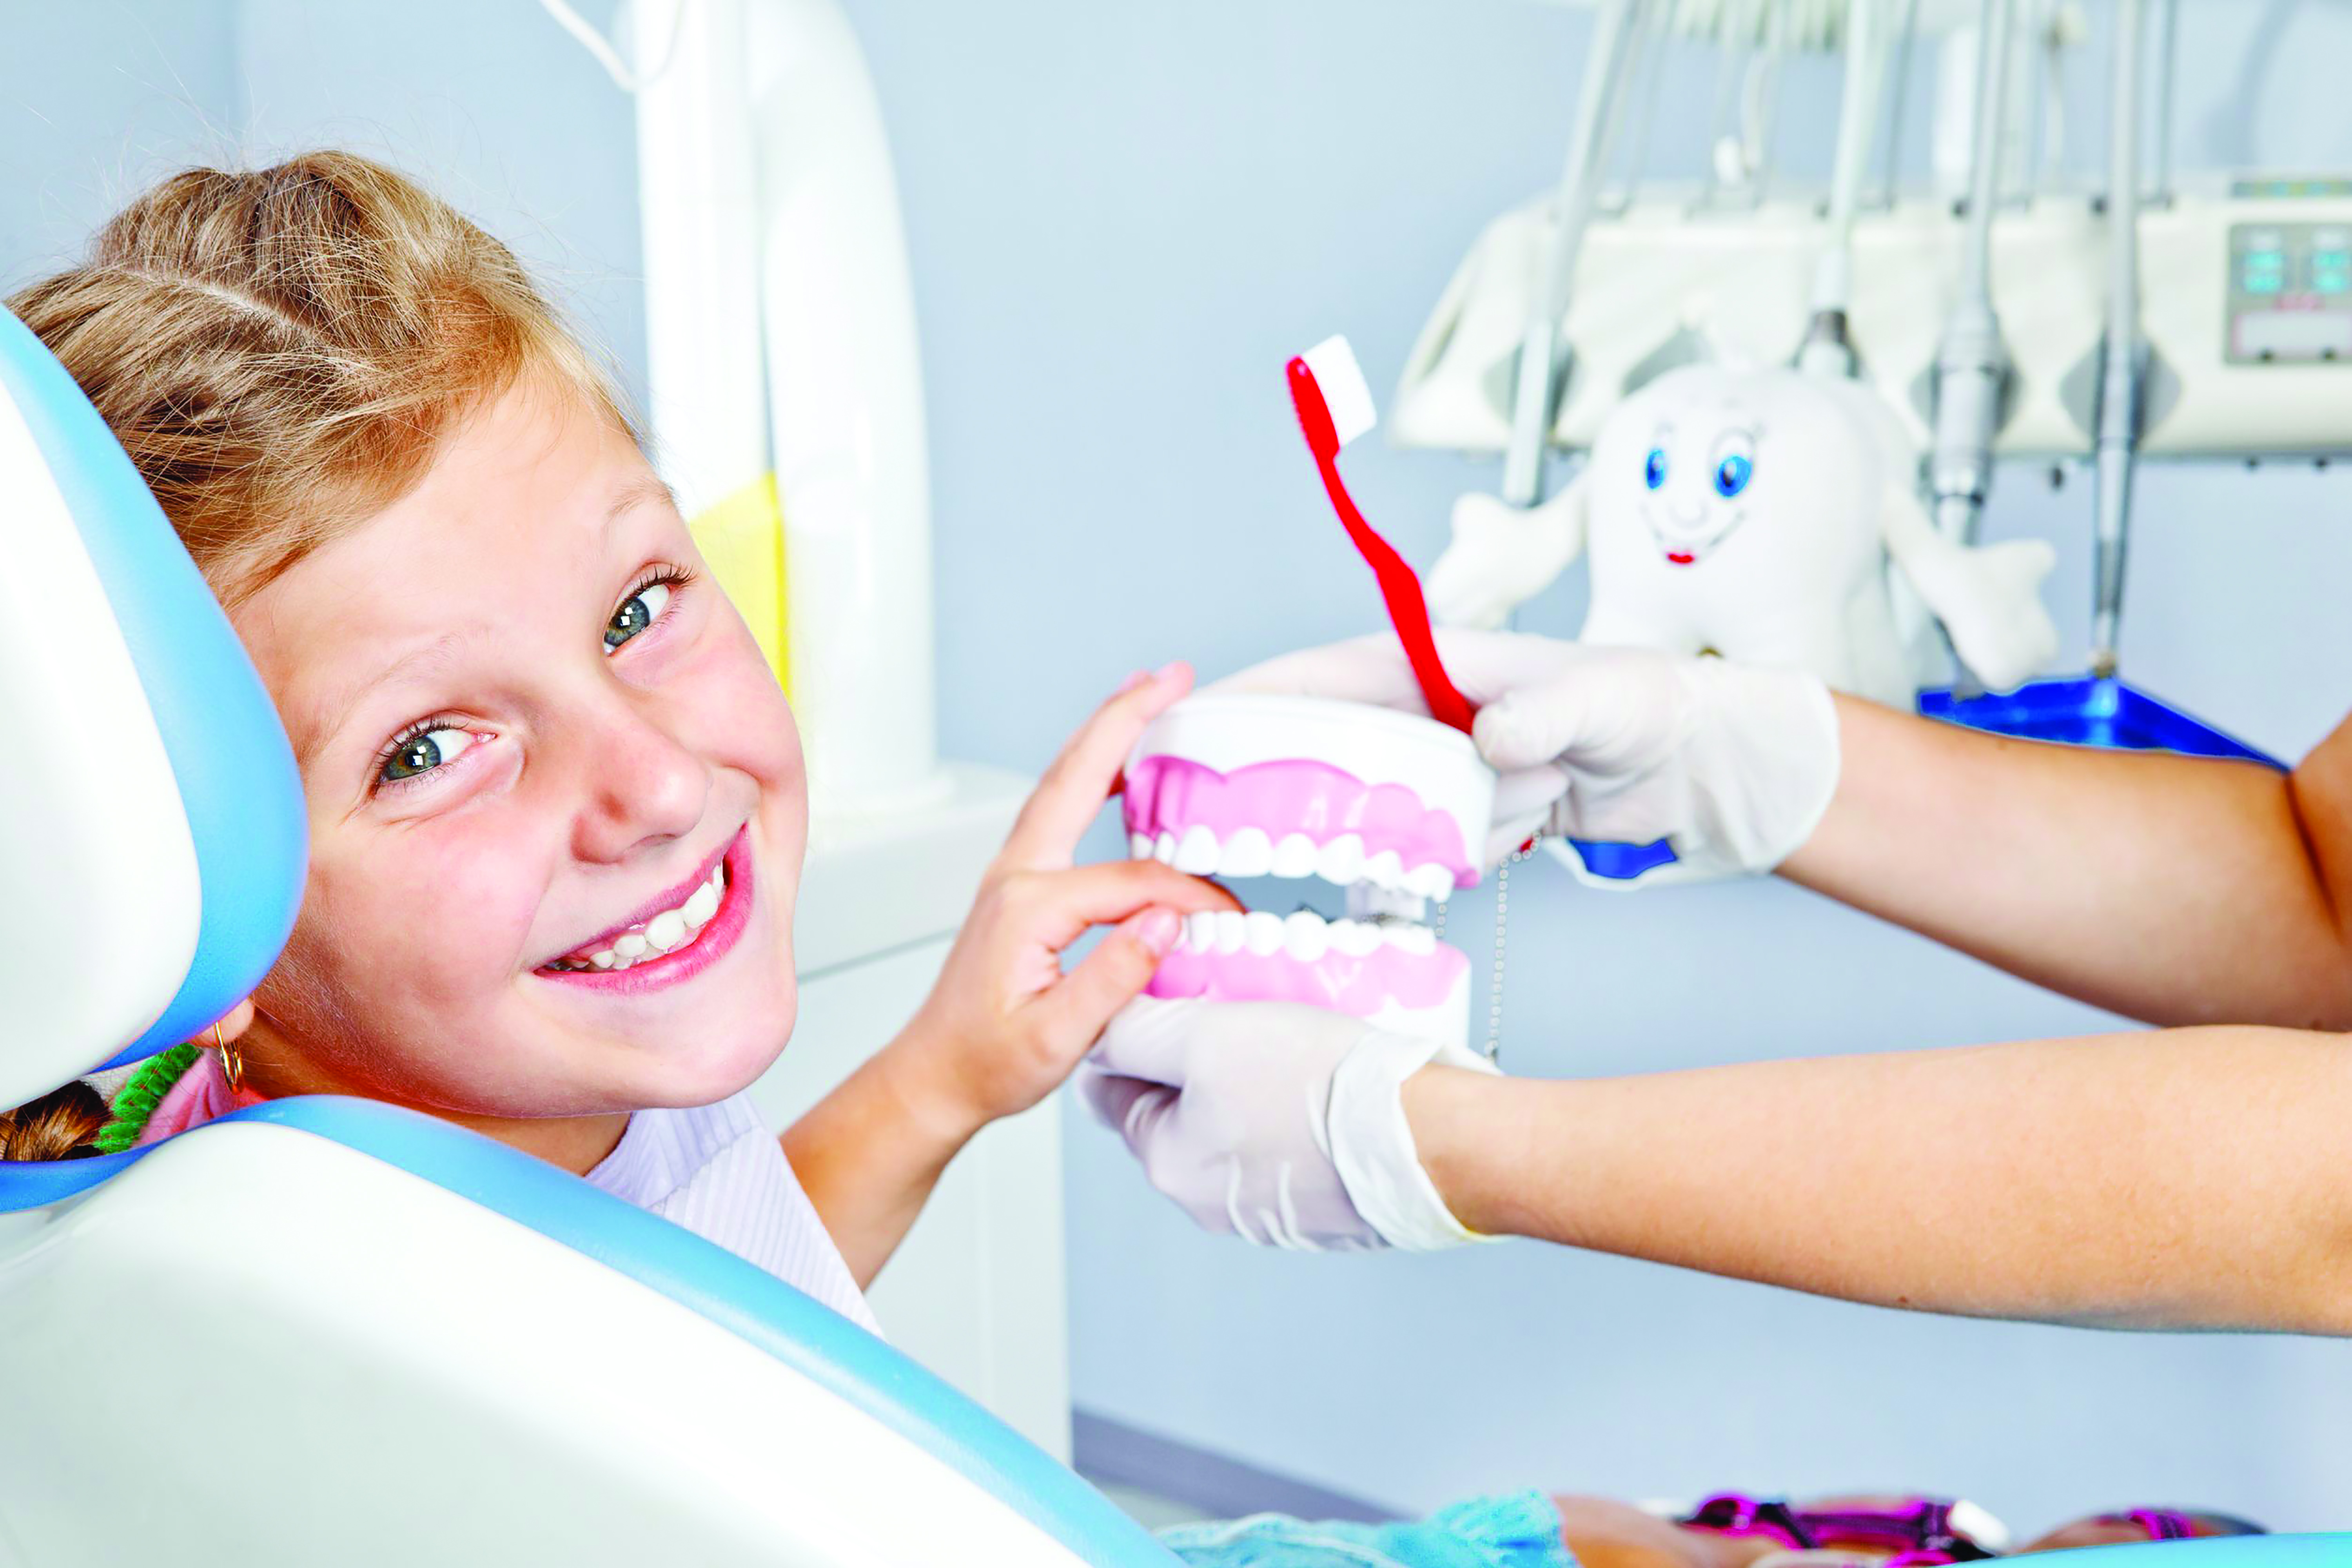 14632914 - happy child playing with toy dentures in dental office